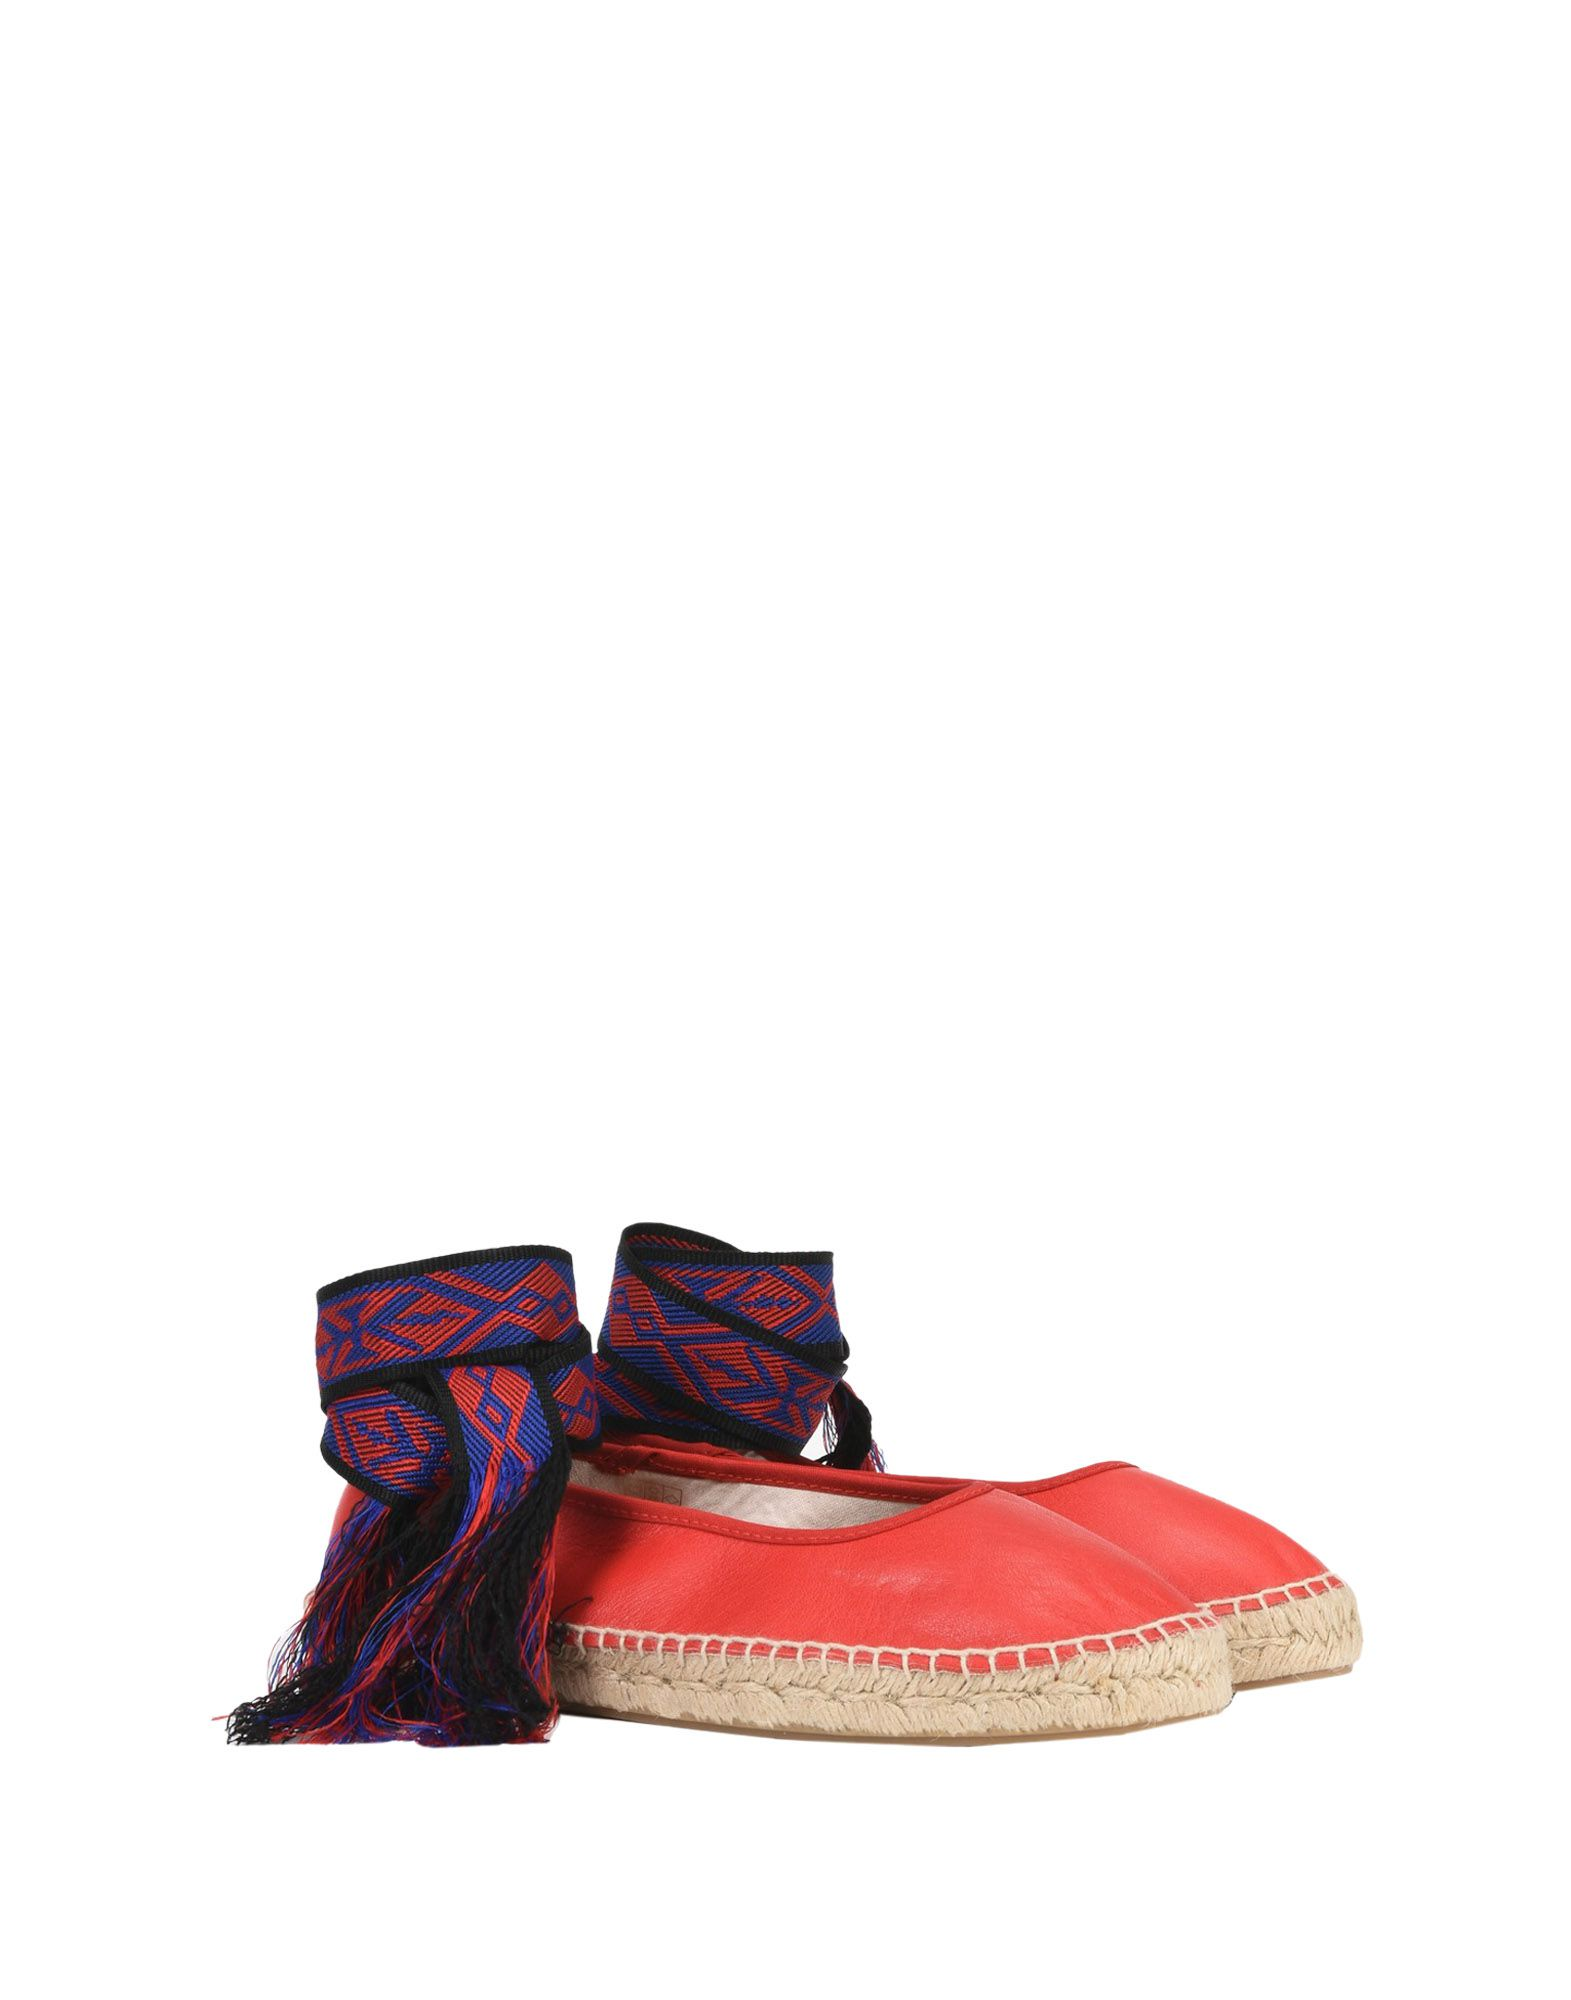 Free People Maya Wrap 11446805CJ Espadrille  11446805CJ Wrap  17d487